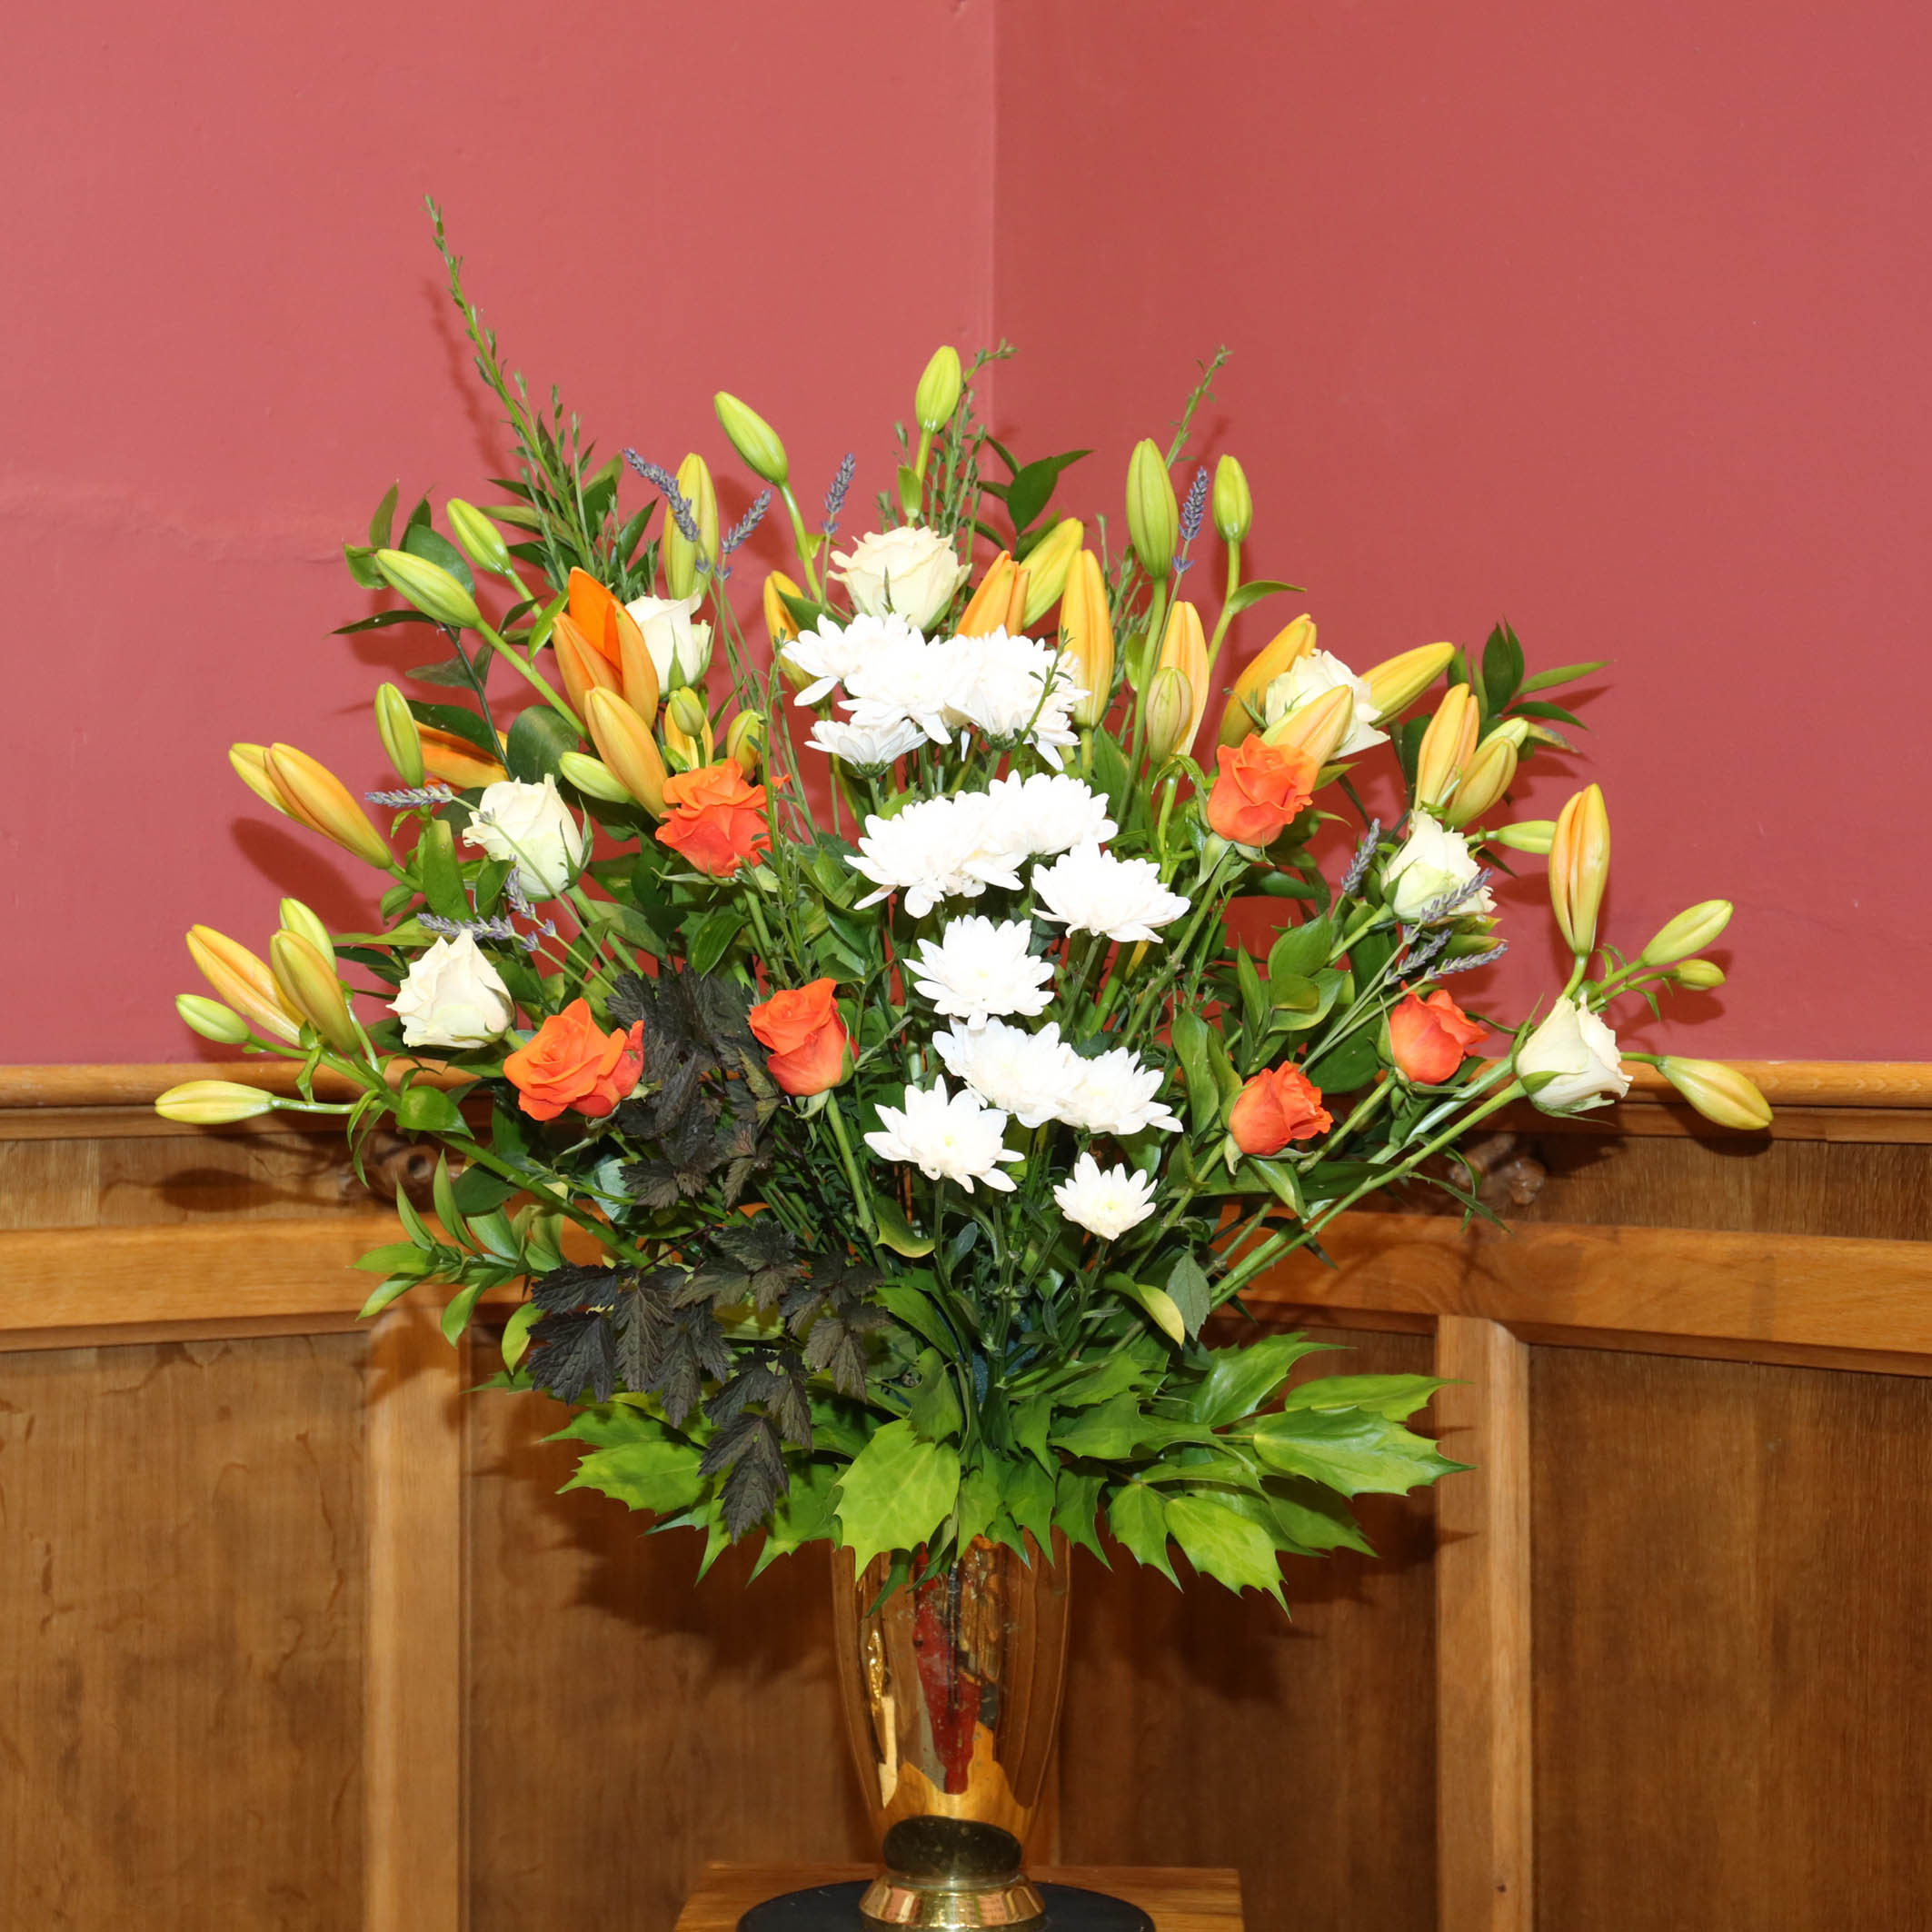 Floral Display in the Sanctuary for this morning's Holy Communion Service